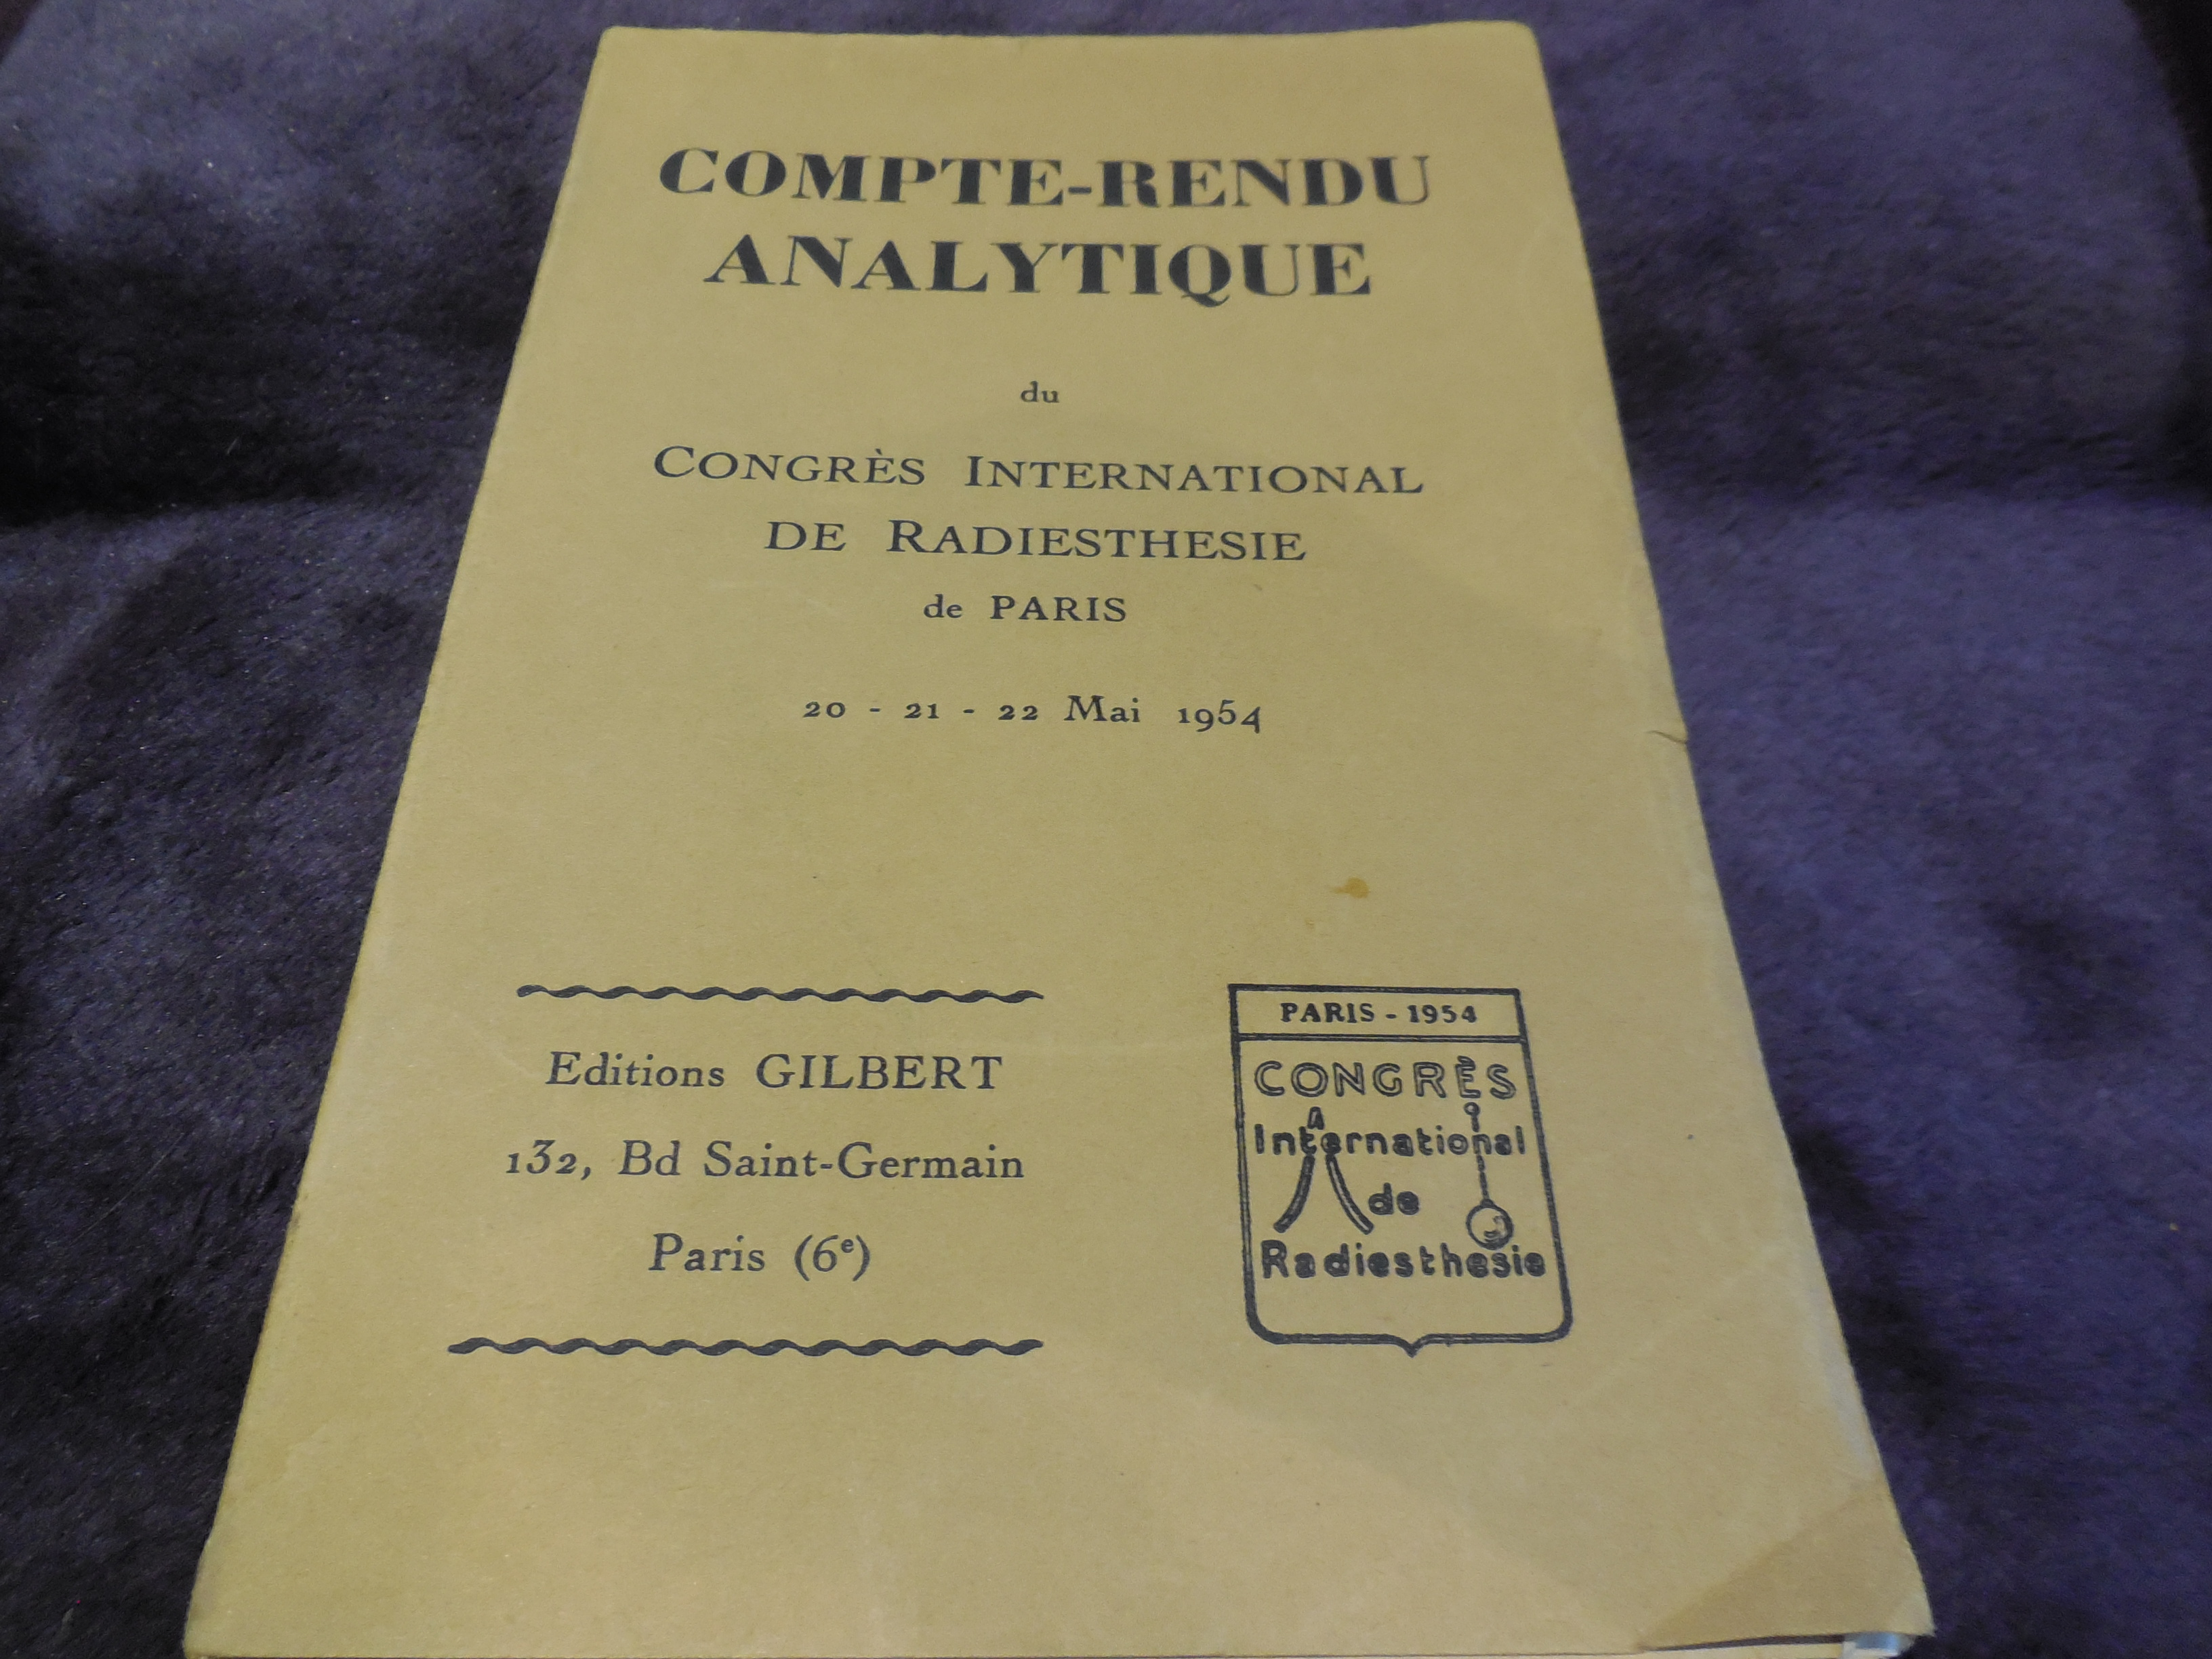 Image for Compte-rendu analytique du Congrès International de Radiestheéie de Paris